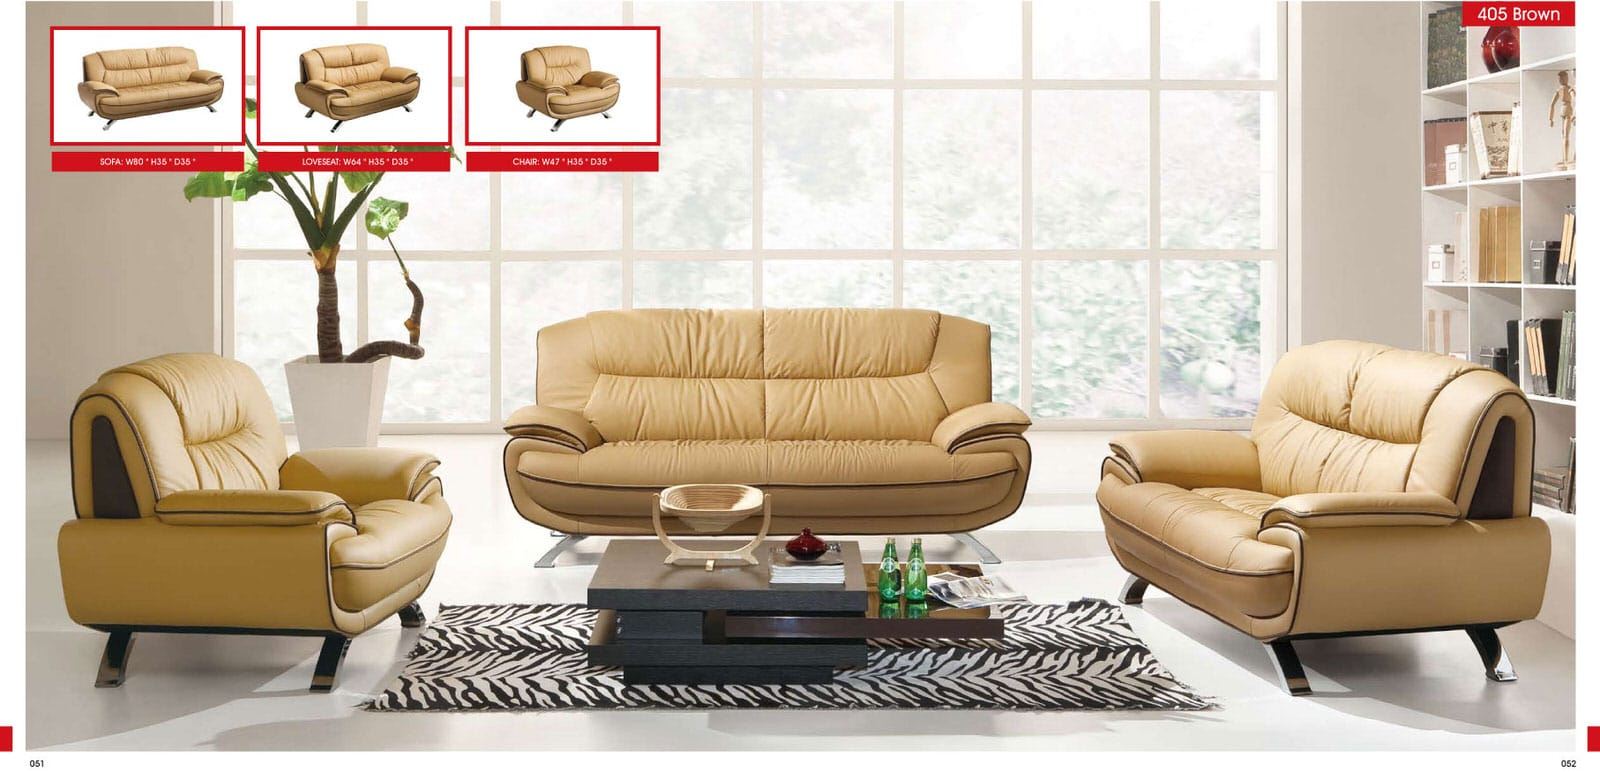 living room furnture 405 brown leather sofa set by esf 11342